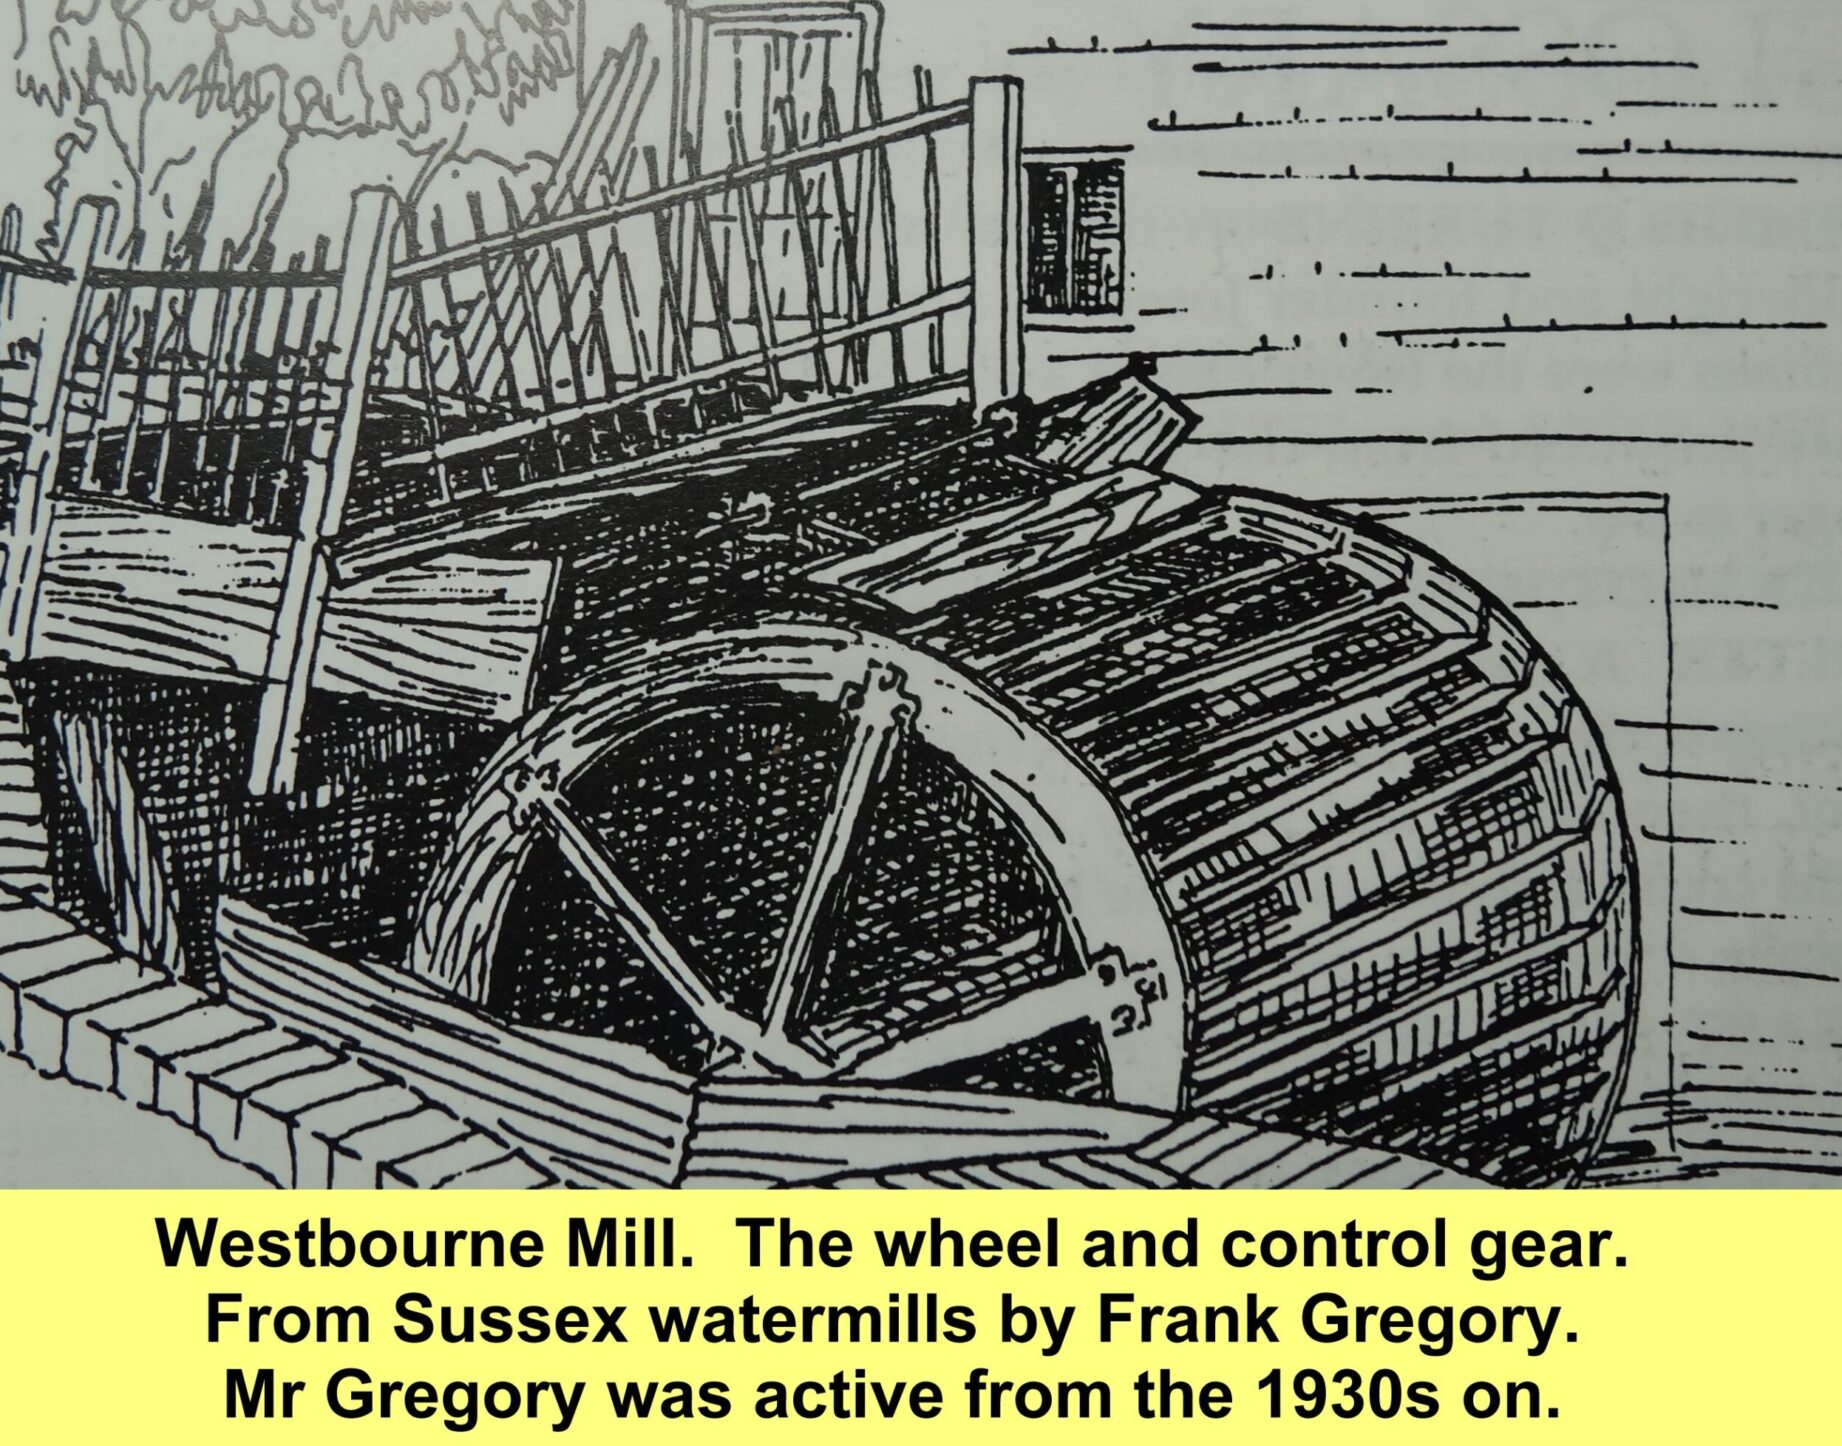 WESTBOURNE HISTORY PHOTO, WESTBOURNE MILL,WHEEL,PENSTOCK